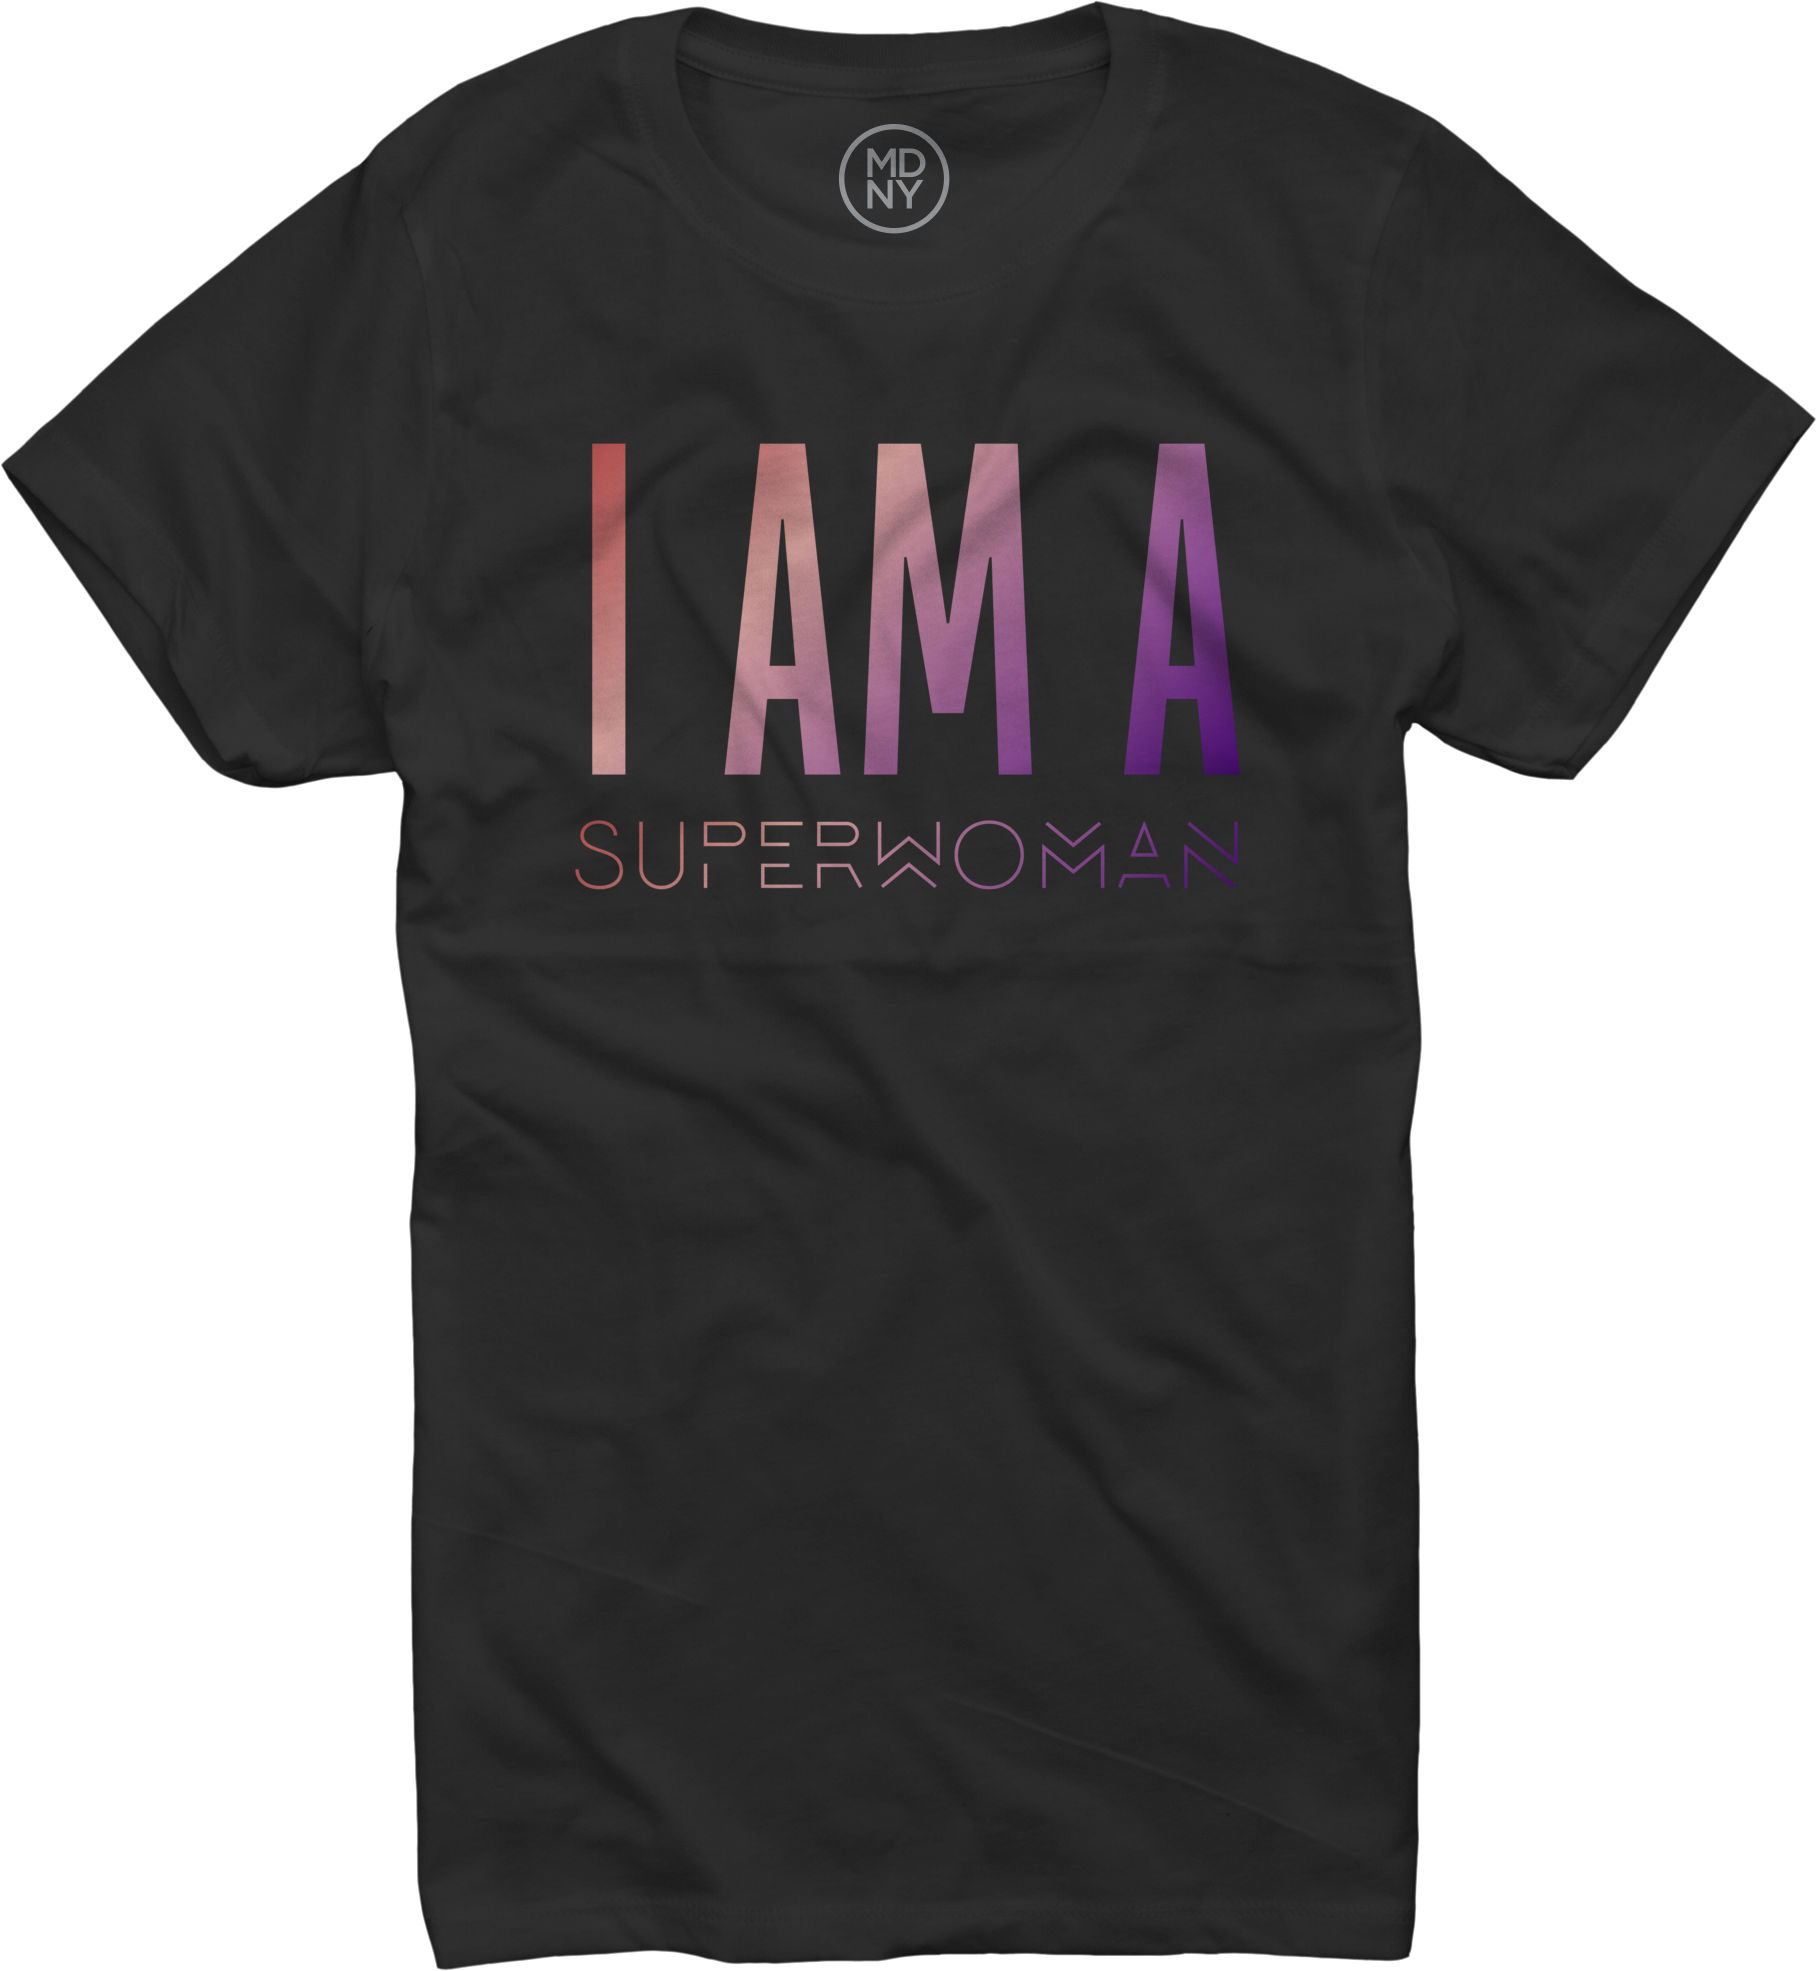 I AM A SUPERWOMAN - Women's T-shirt